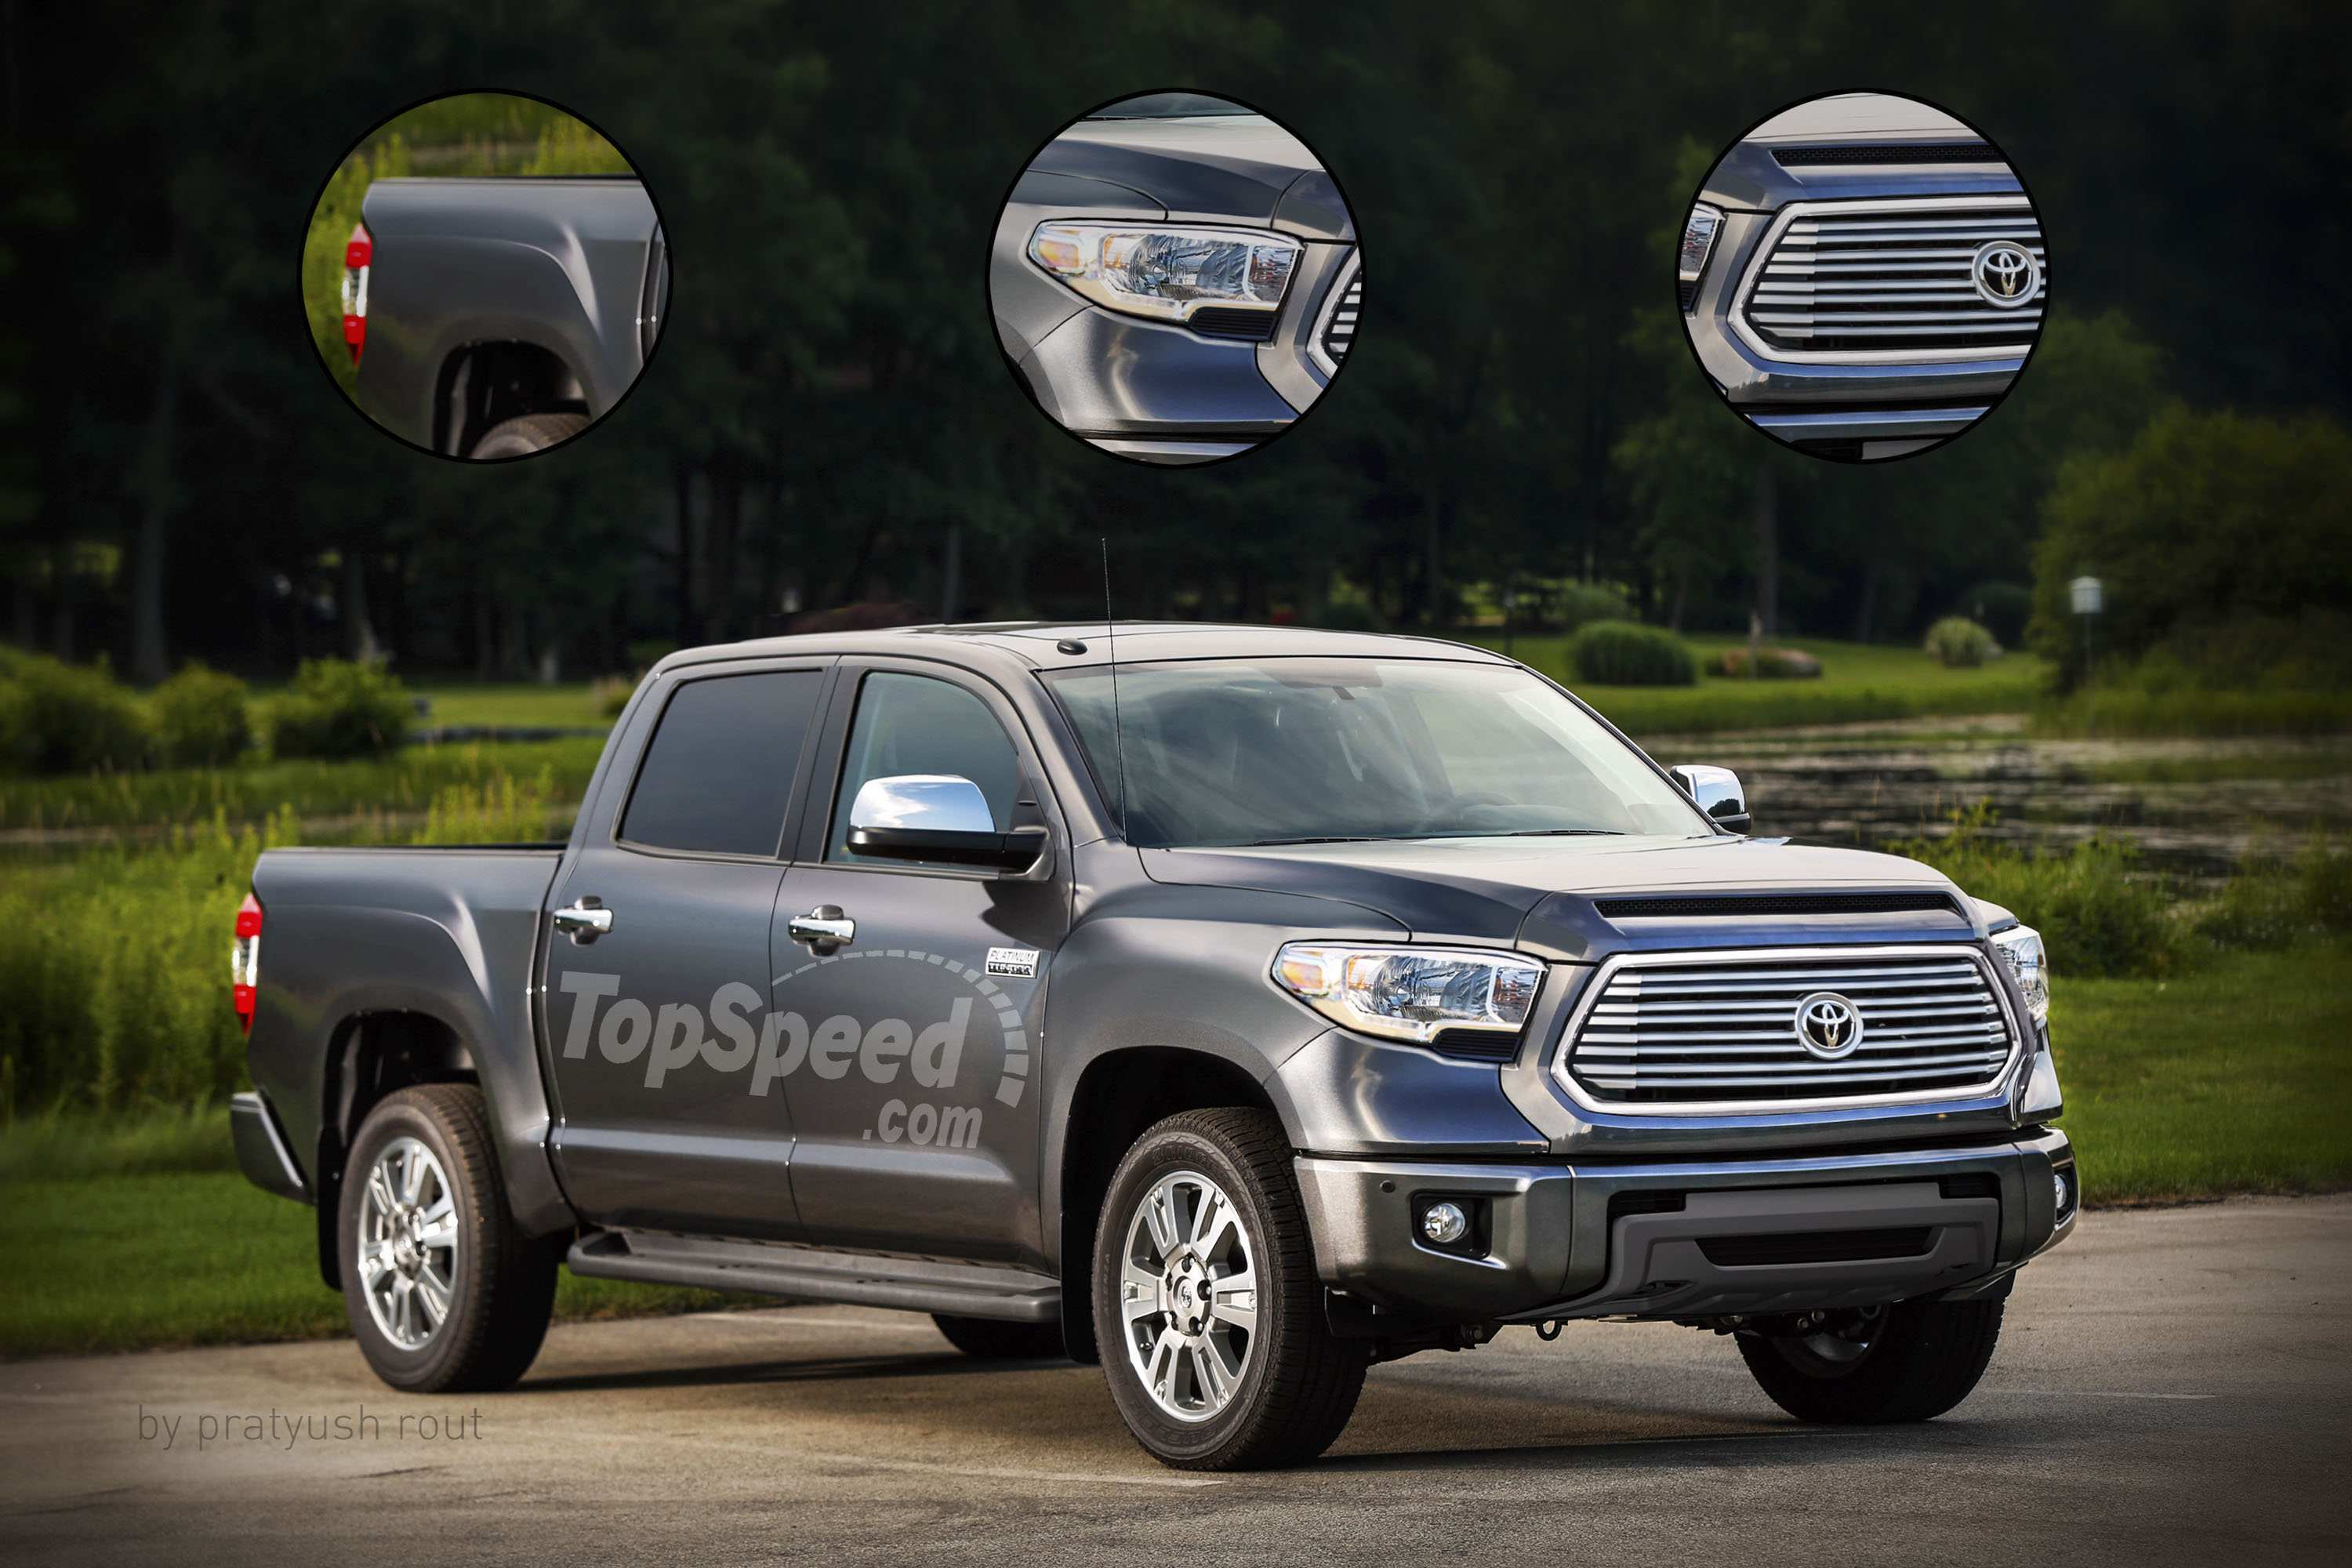 57 All New 2019 Toyota Tundra Update Reviews with 2019 Toyota Tundra Update